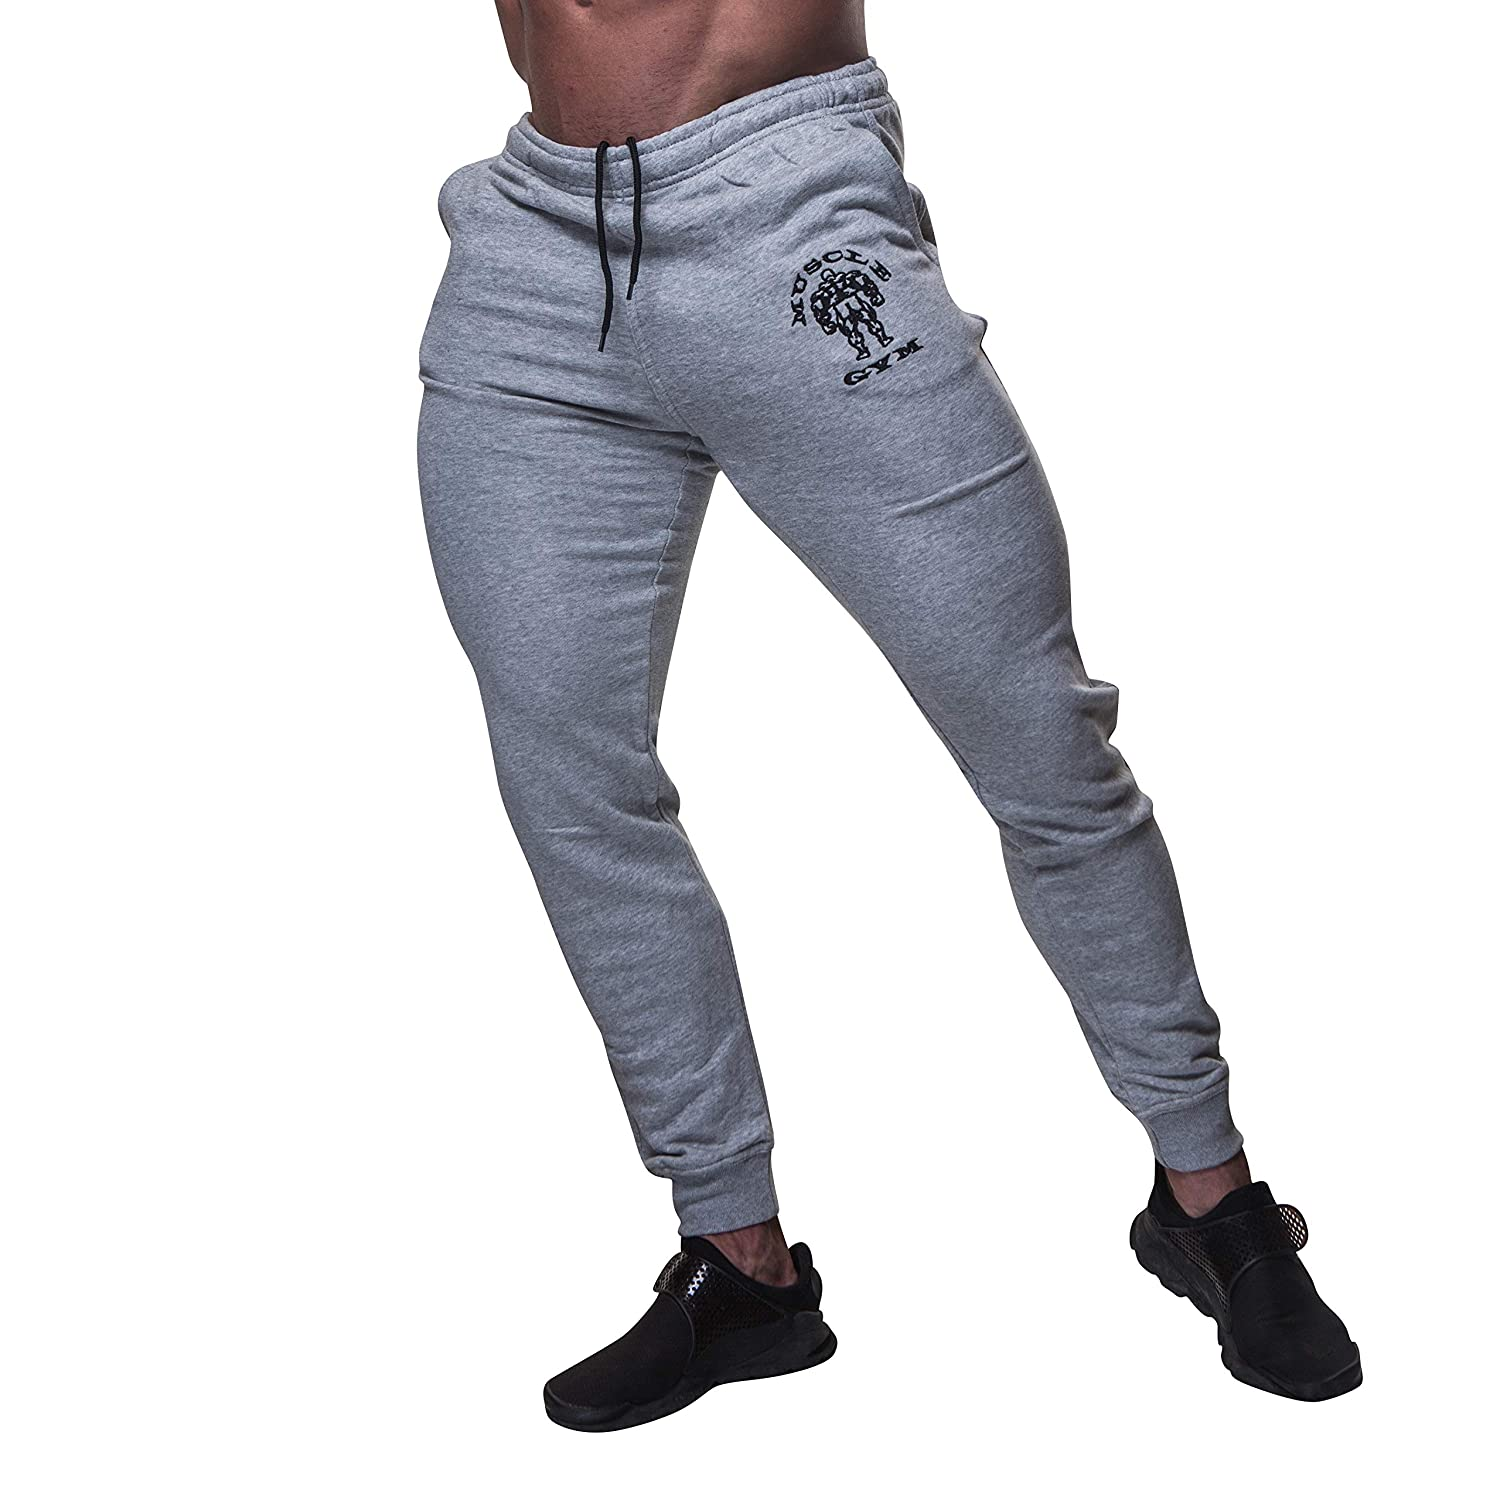 MUSCLE GYM Men's Fleece Workout Gym Jogger Athletic Trouser Tracksuits Bottoms Grey